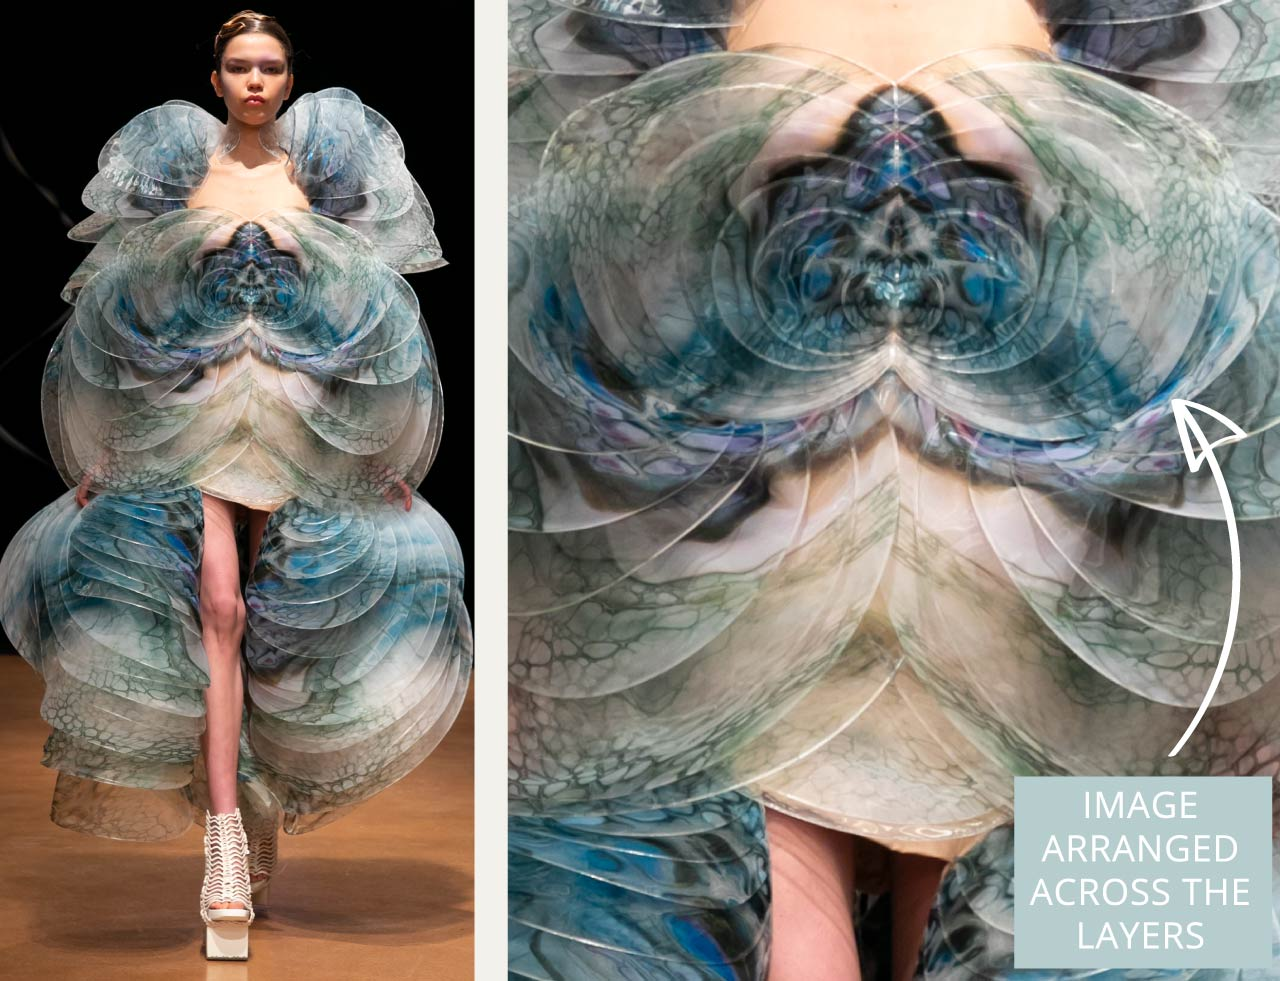 Contemporary Couture Techniques at Iris van Herpen | The Cutting Class. Digitally printed fabric arranges image carefully across multiple layers.